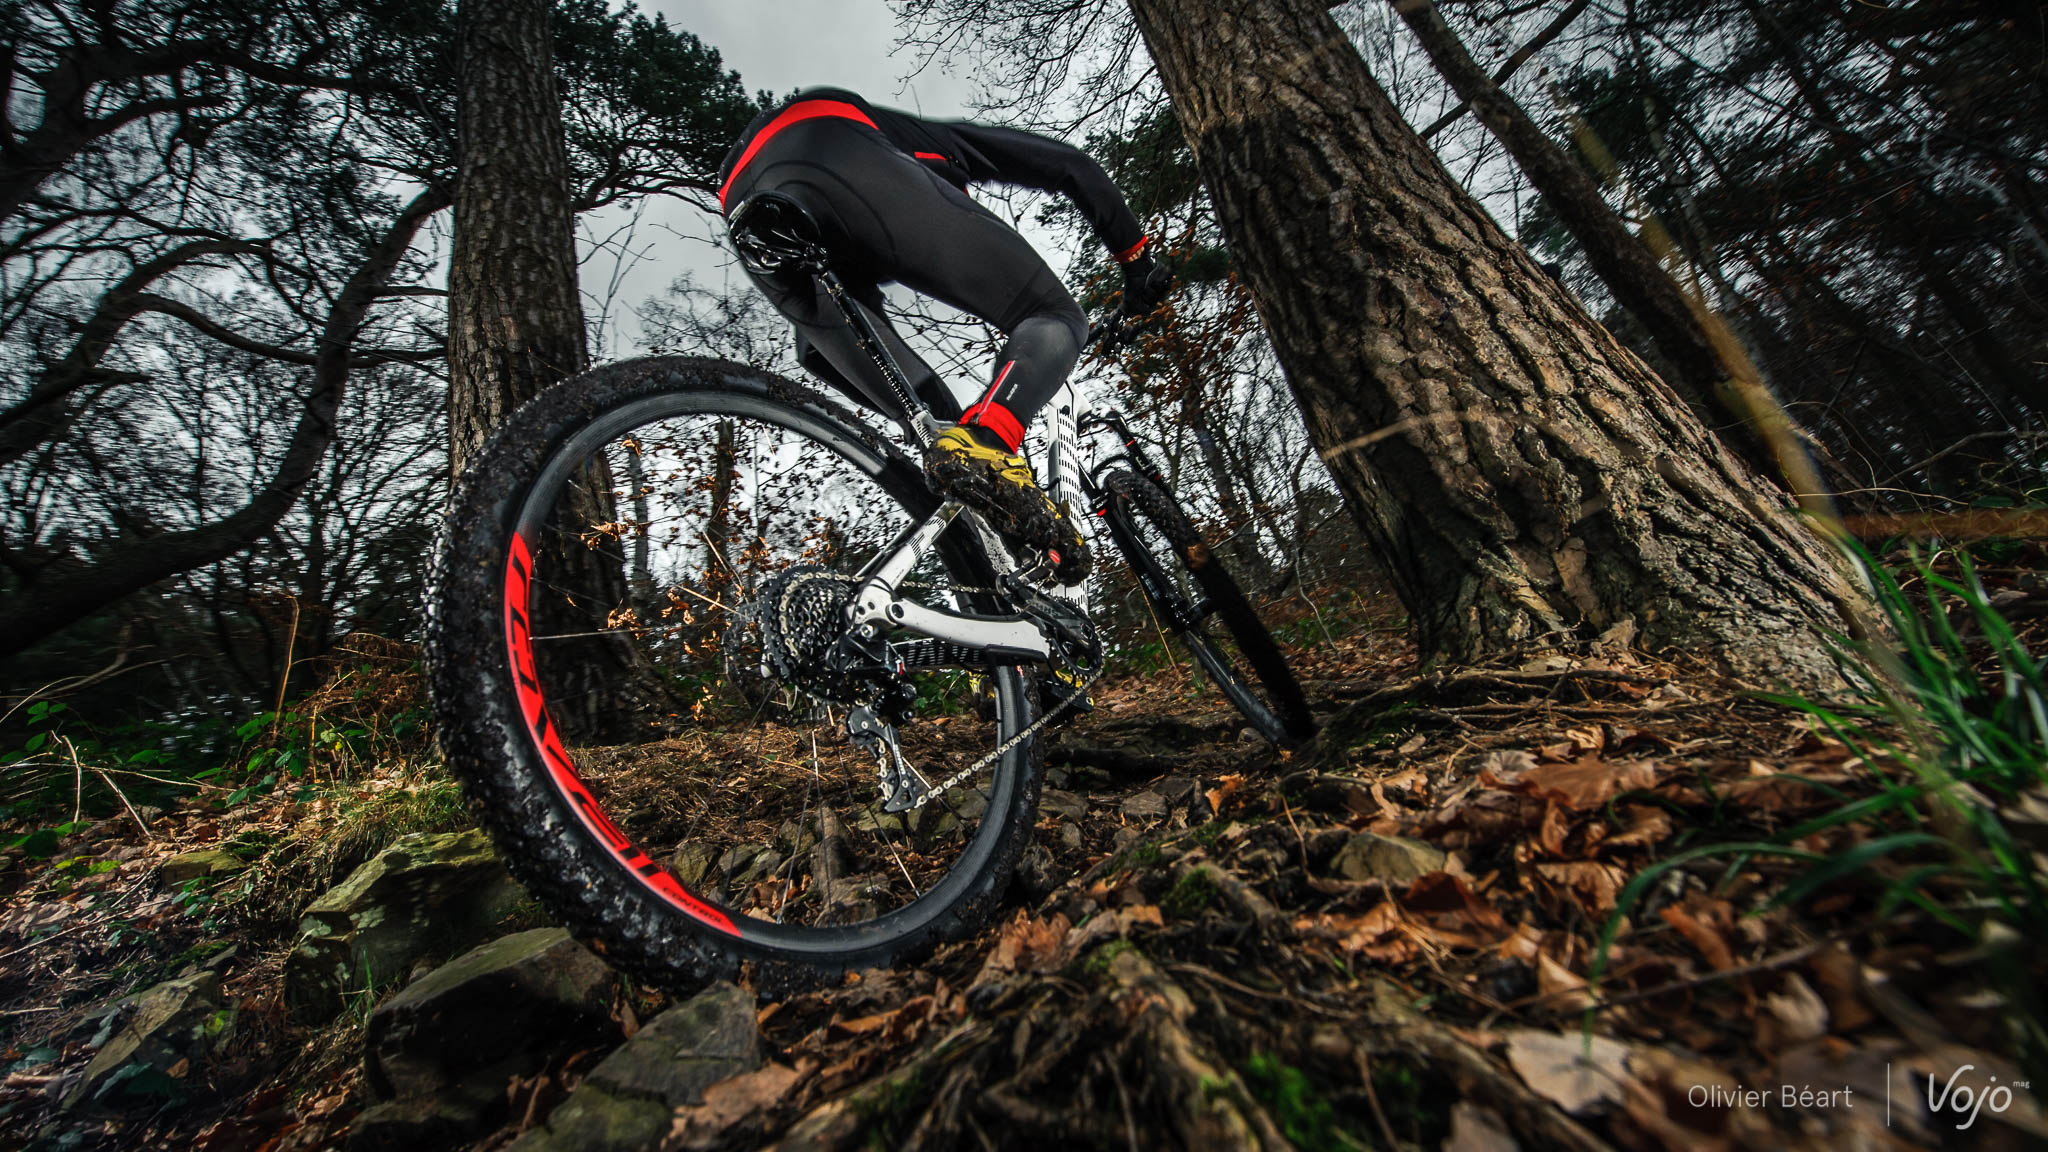 Specialized_Epic_Expert_WorldCup_Copyright_OBeart_VojoMag-12